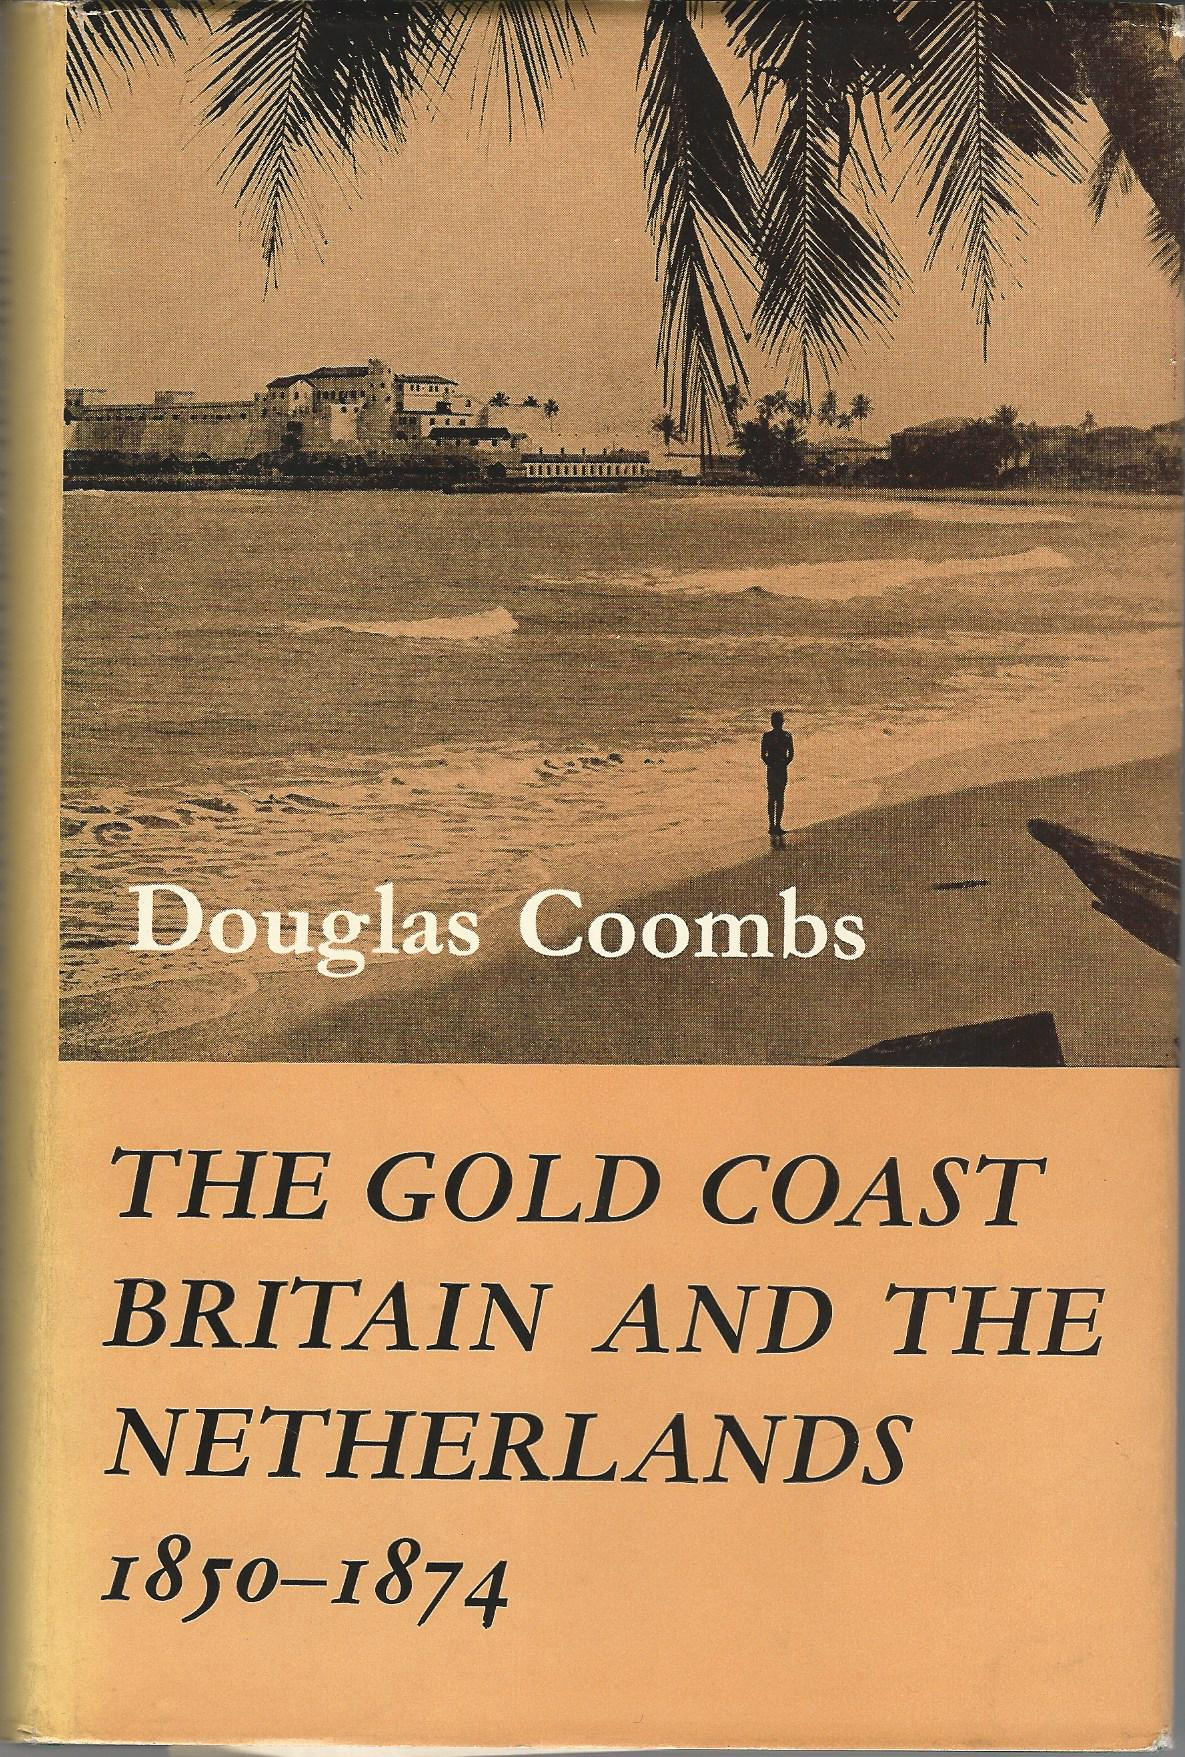 Image for The Gold Coast, Britian and the Netherlands 1850-1874.